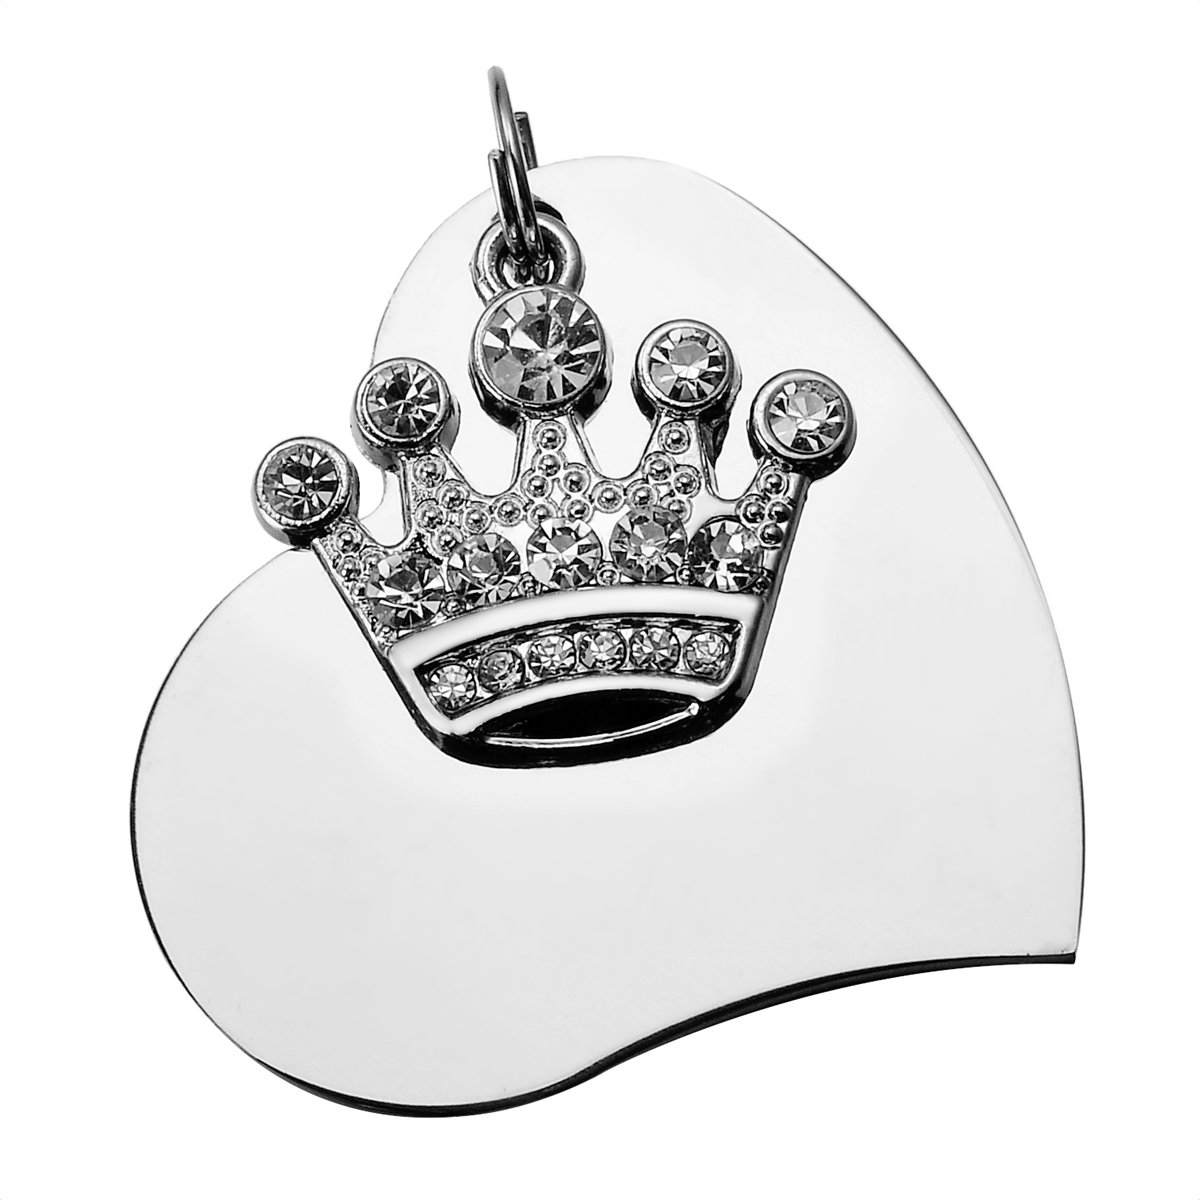 HooAMI Stainless Steel Pet Id Tags for Dogs & Cats with Clear Crystal Imperial Crown Charm